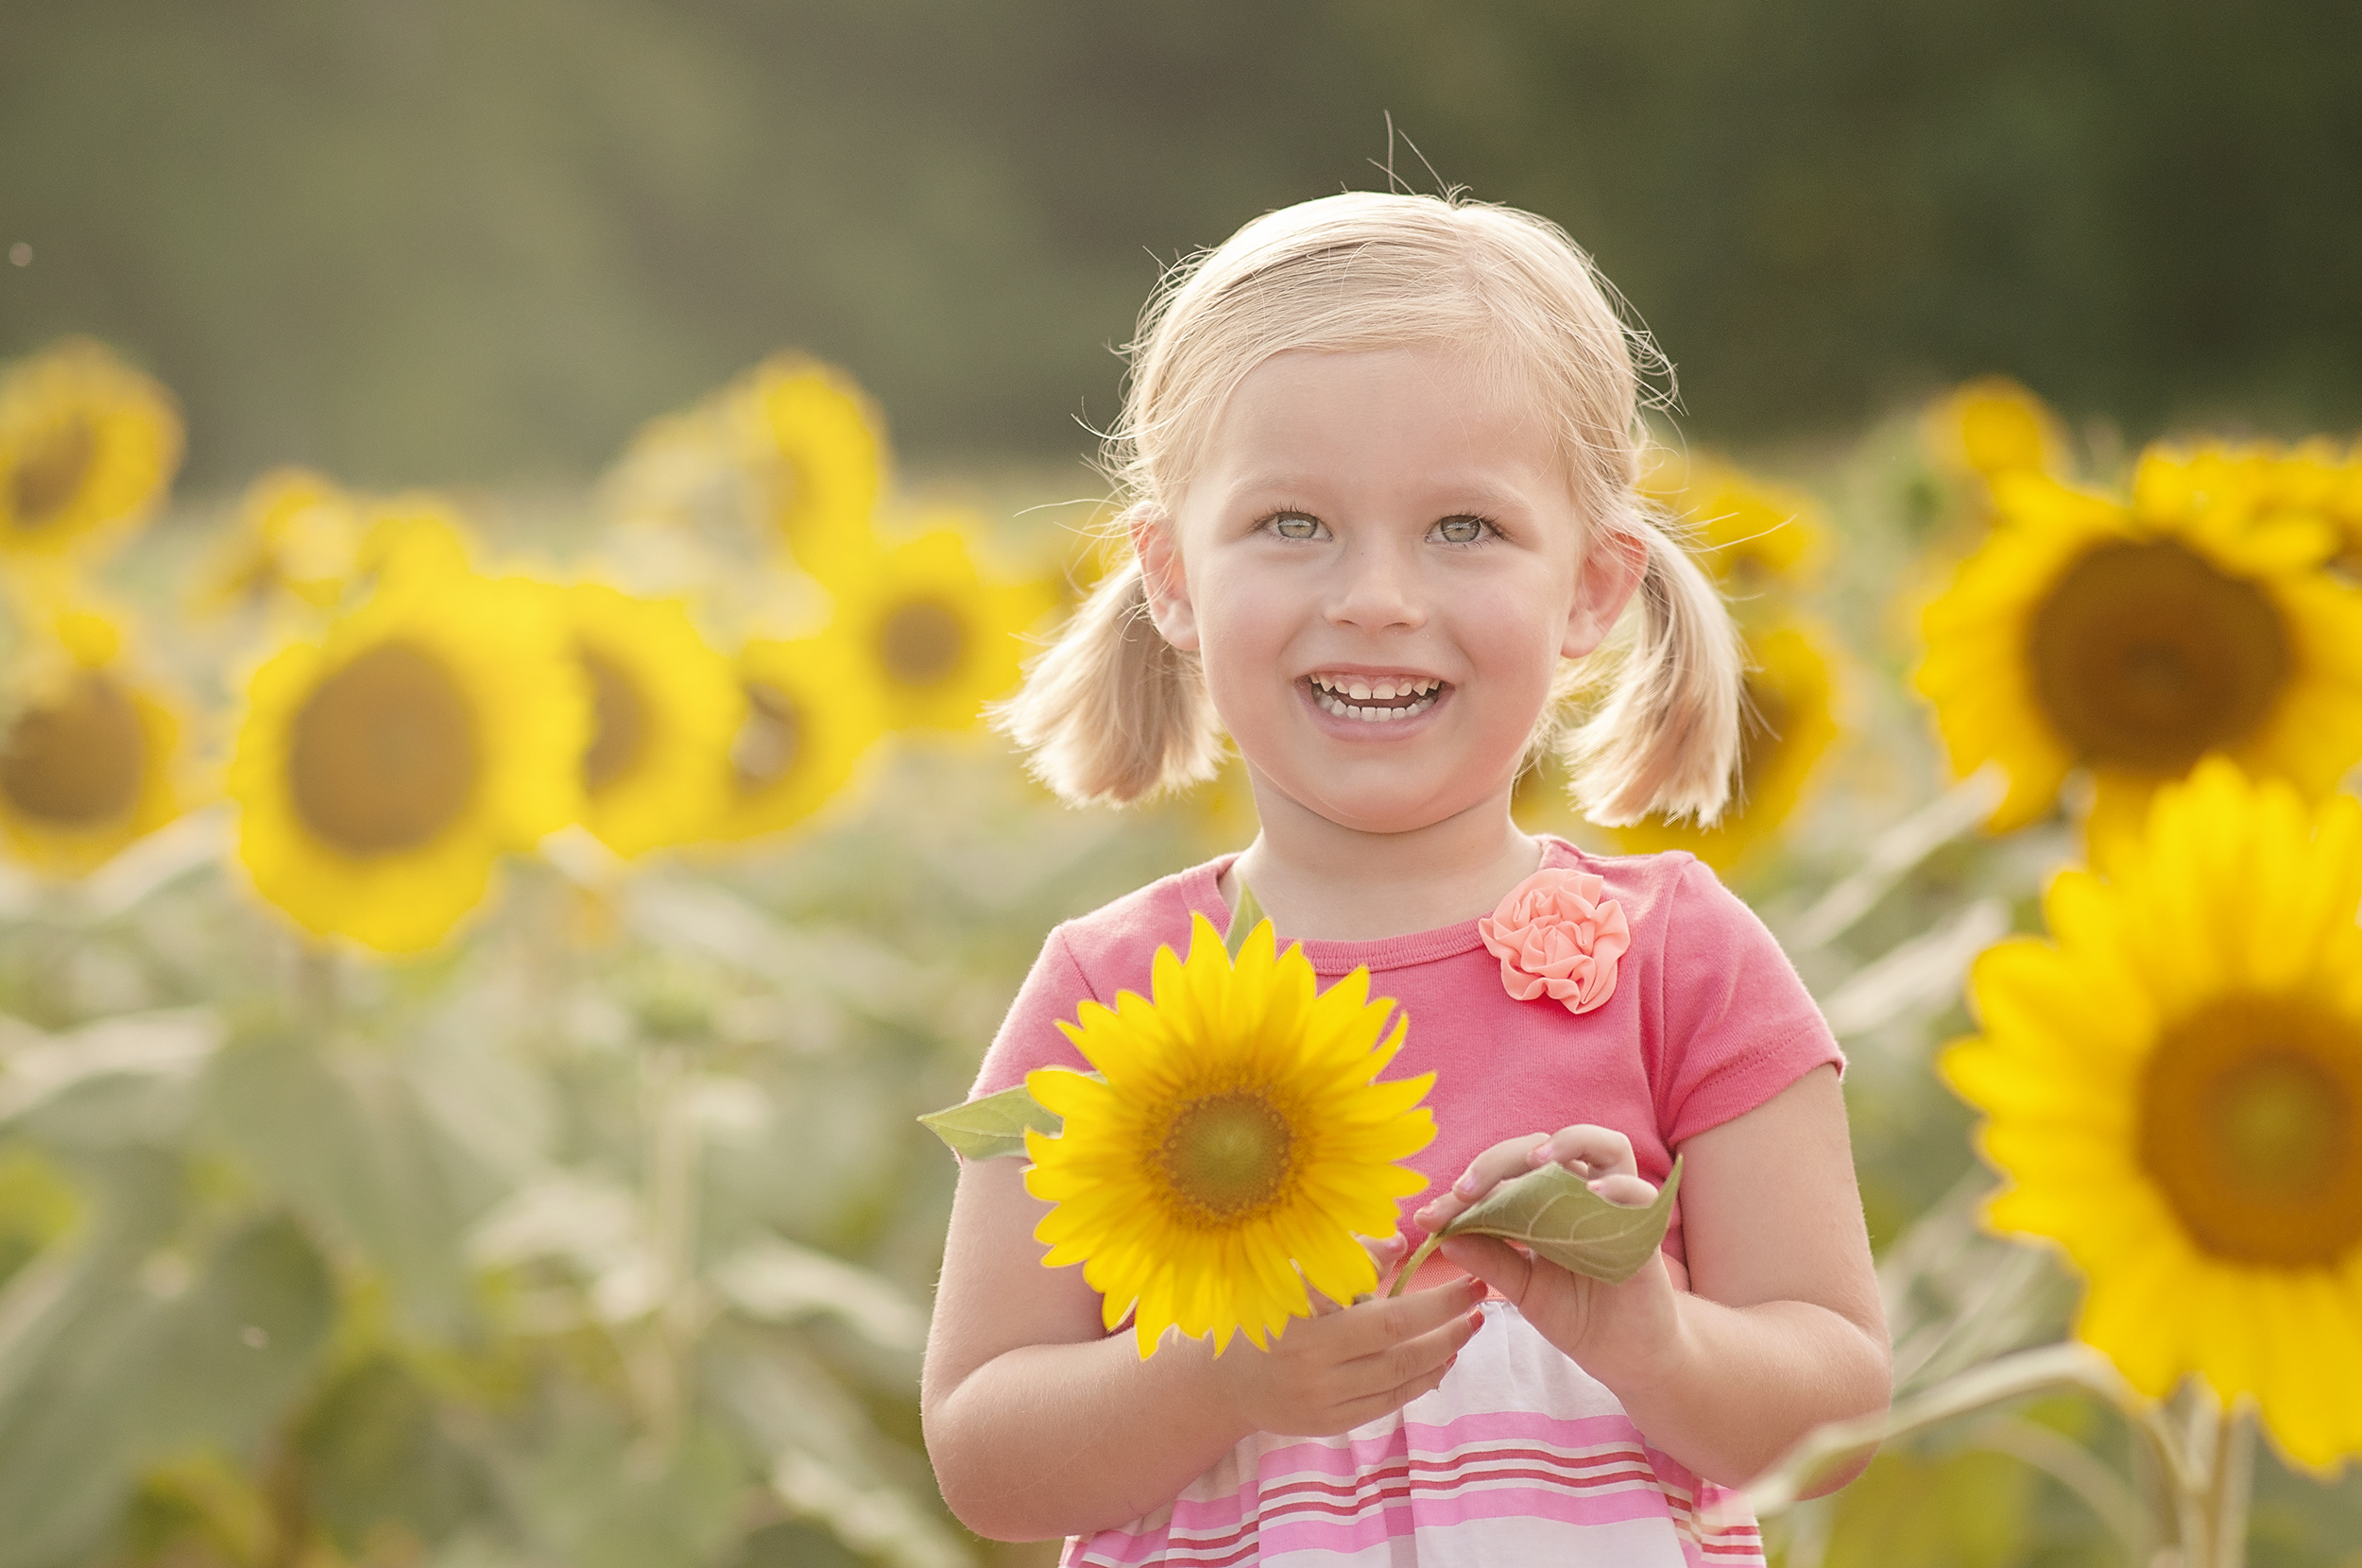 Limited Edition Sunflower Sessions | Charlotte, NC Family & Senior Photographer